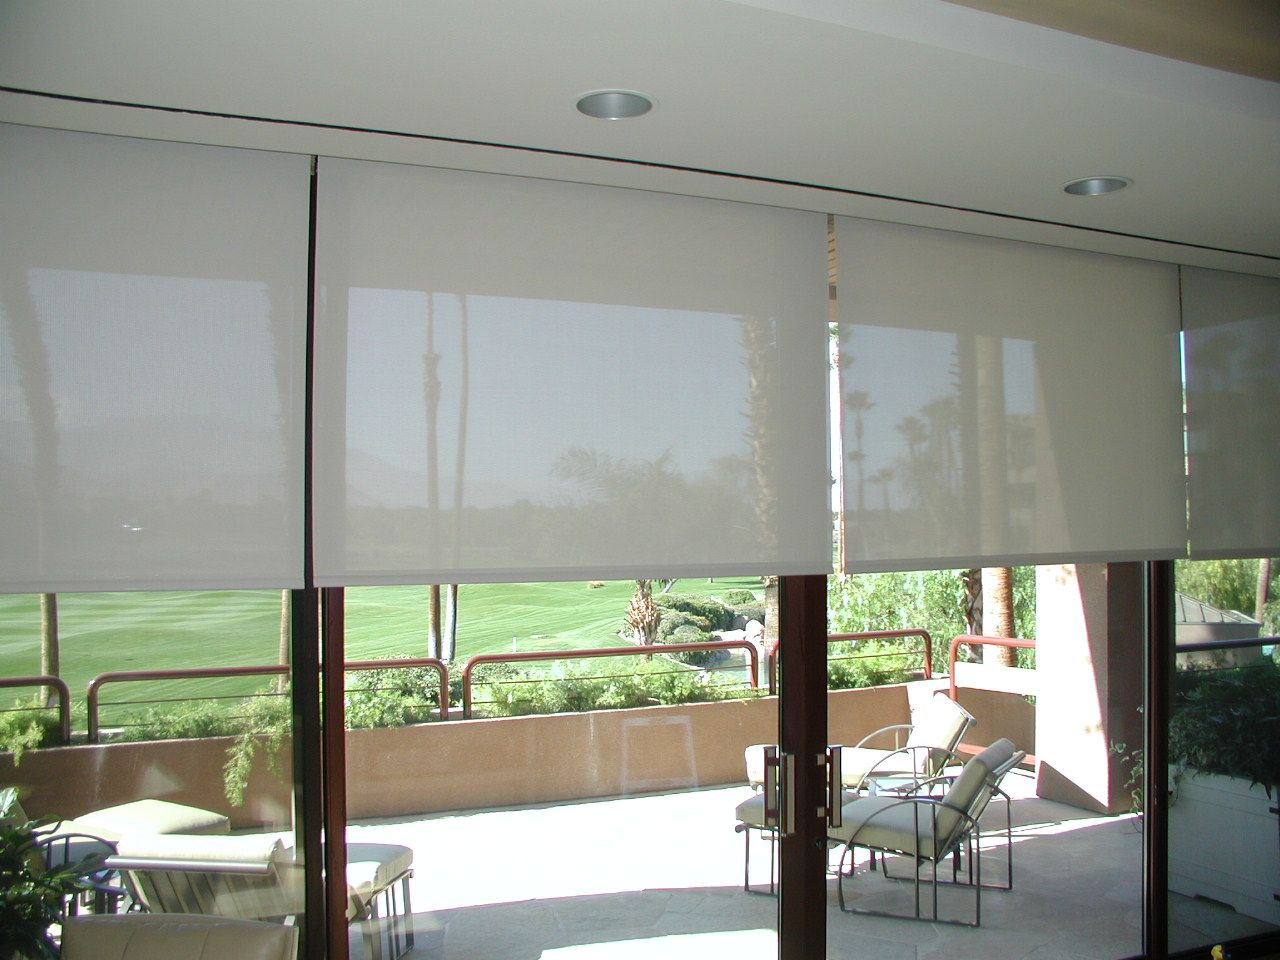 pertaining door treatments outstanding to glass doors sliding needed for best window patio pretty treatment are ways kitchen